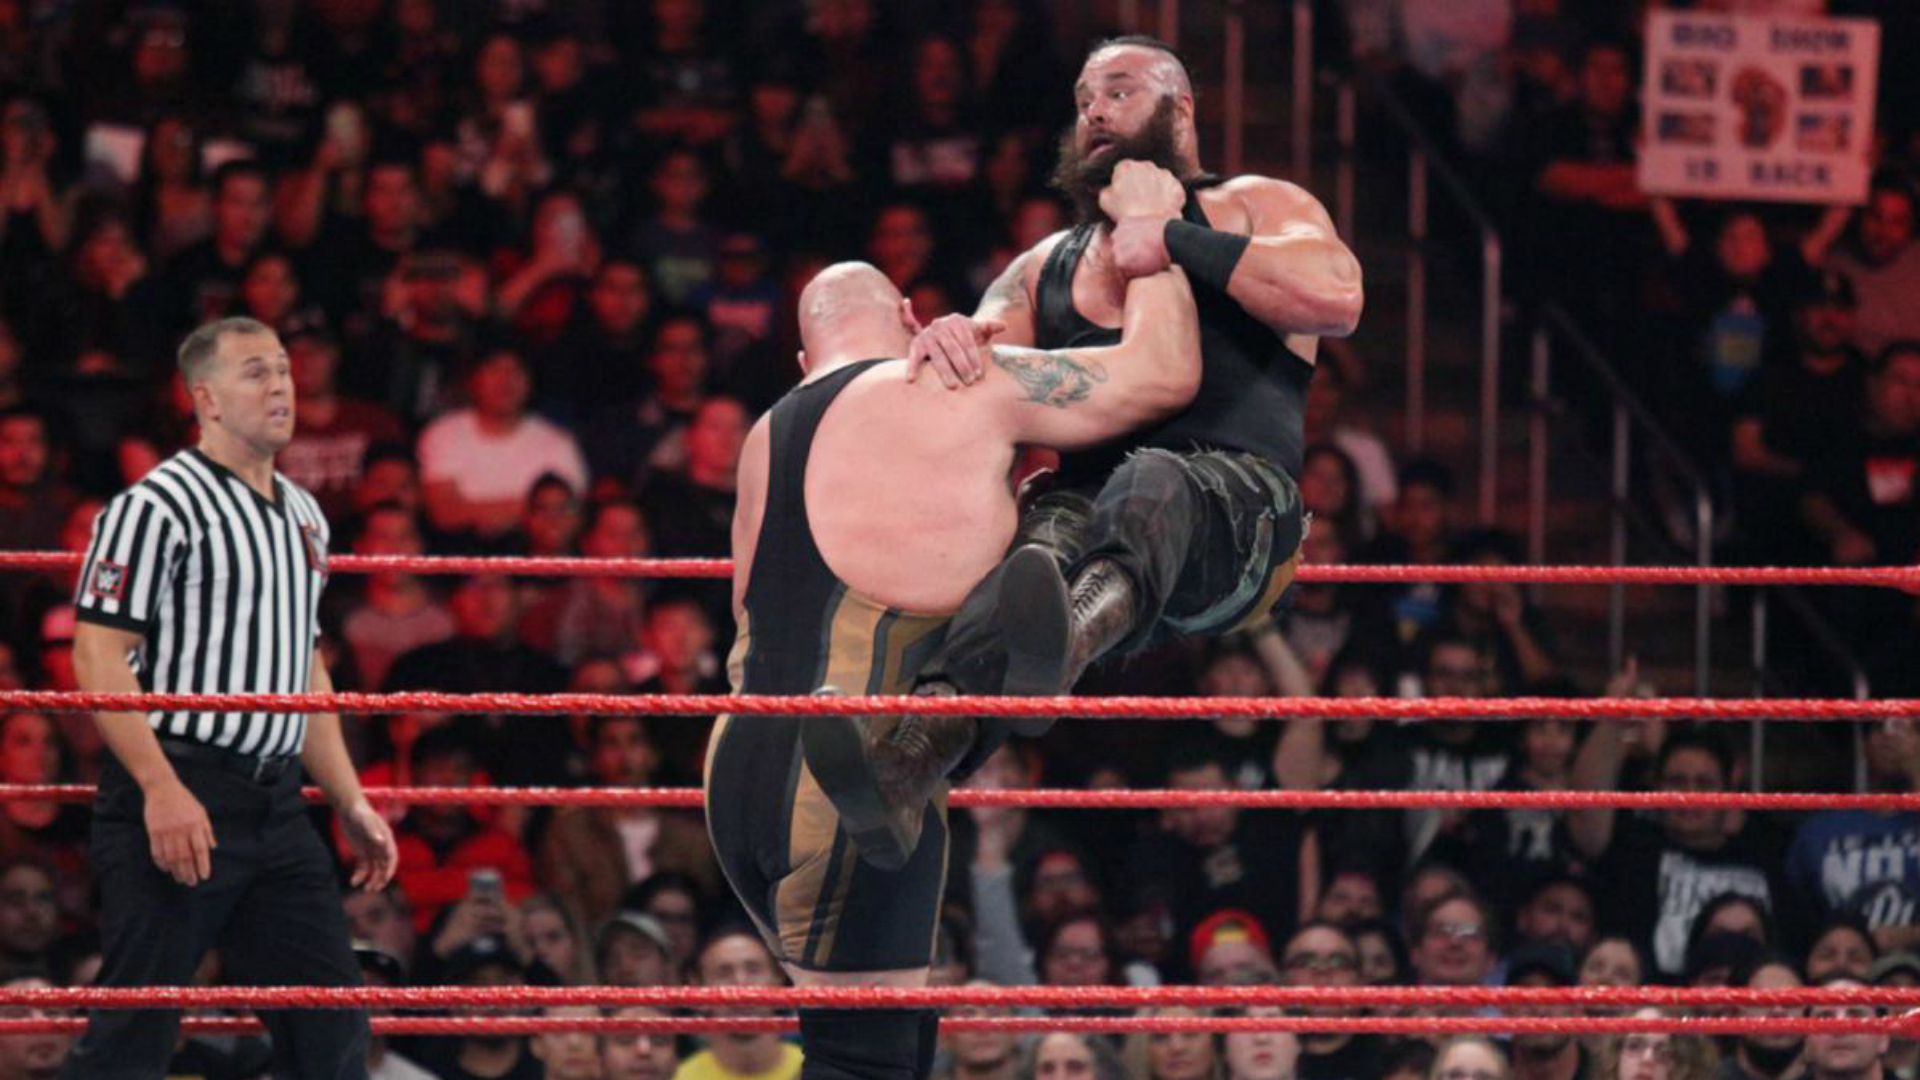 The Big Show slamming Braun Strowman.